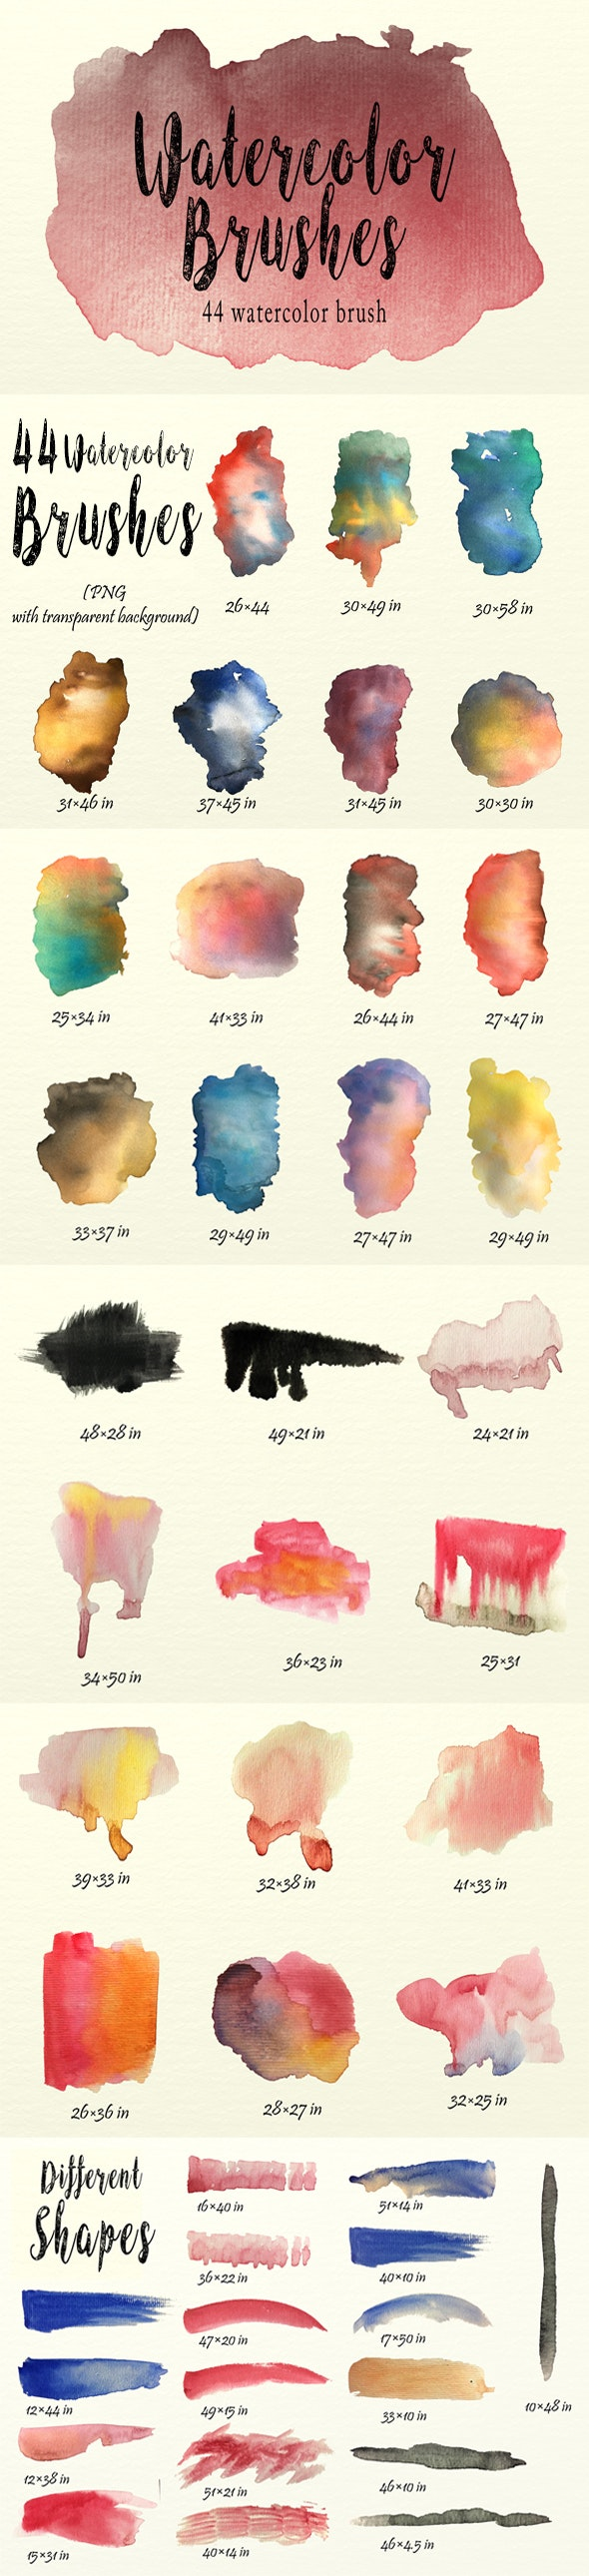 Watercolor Brushes Pack - Brushes Photoshop